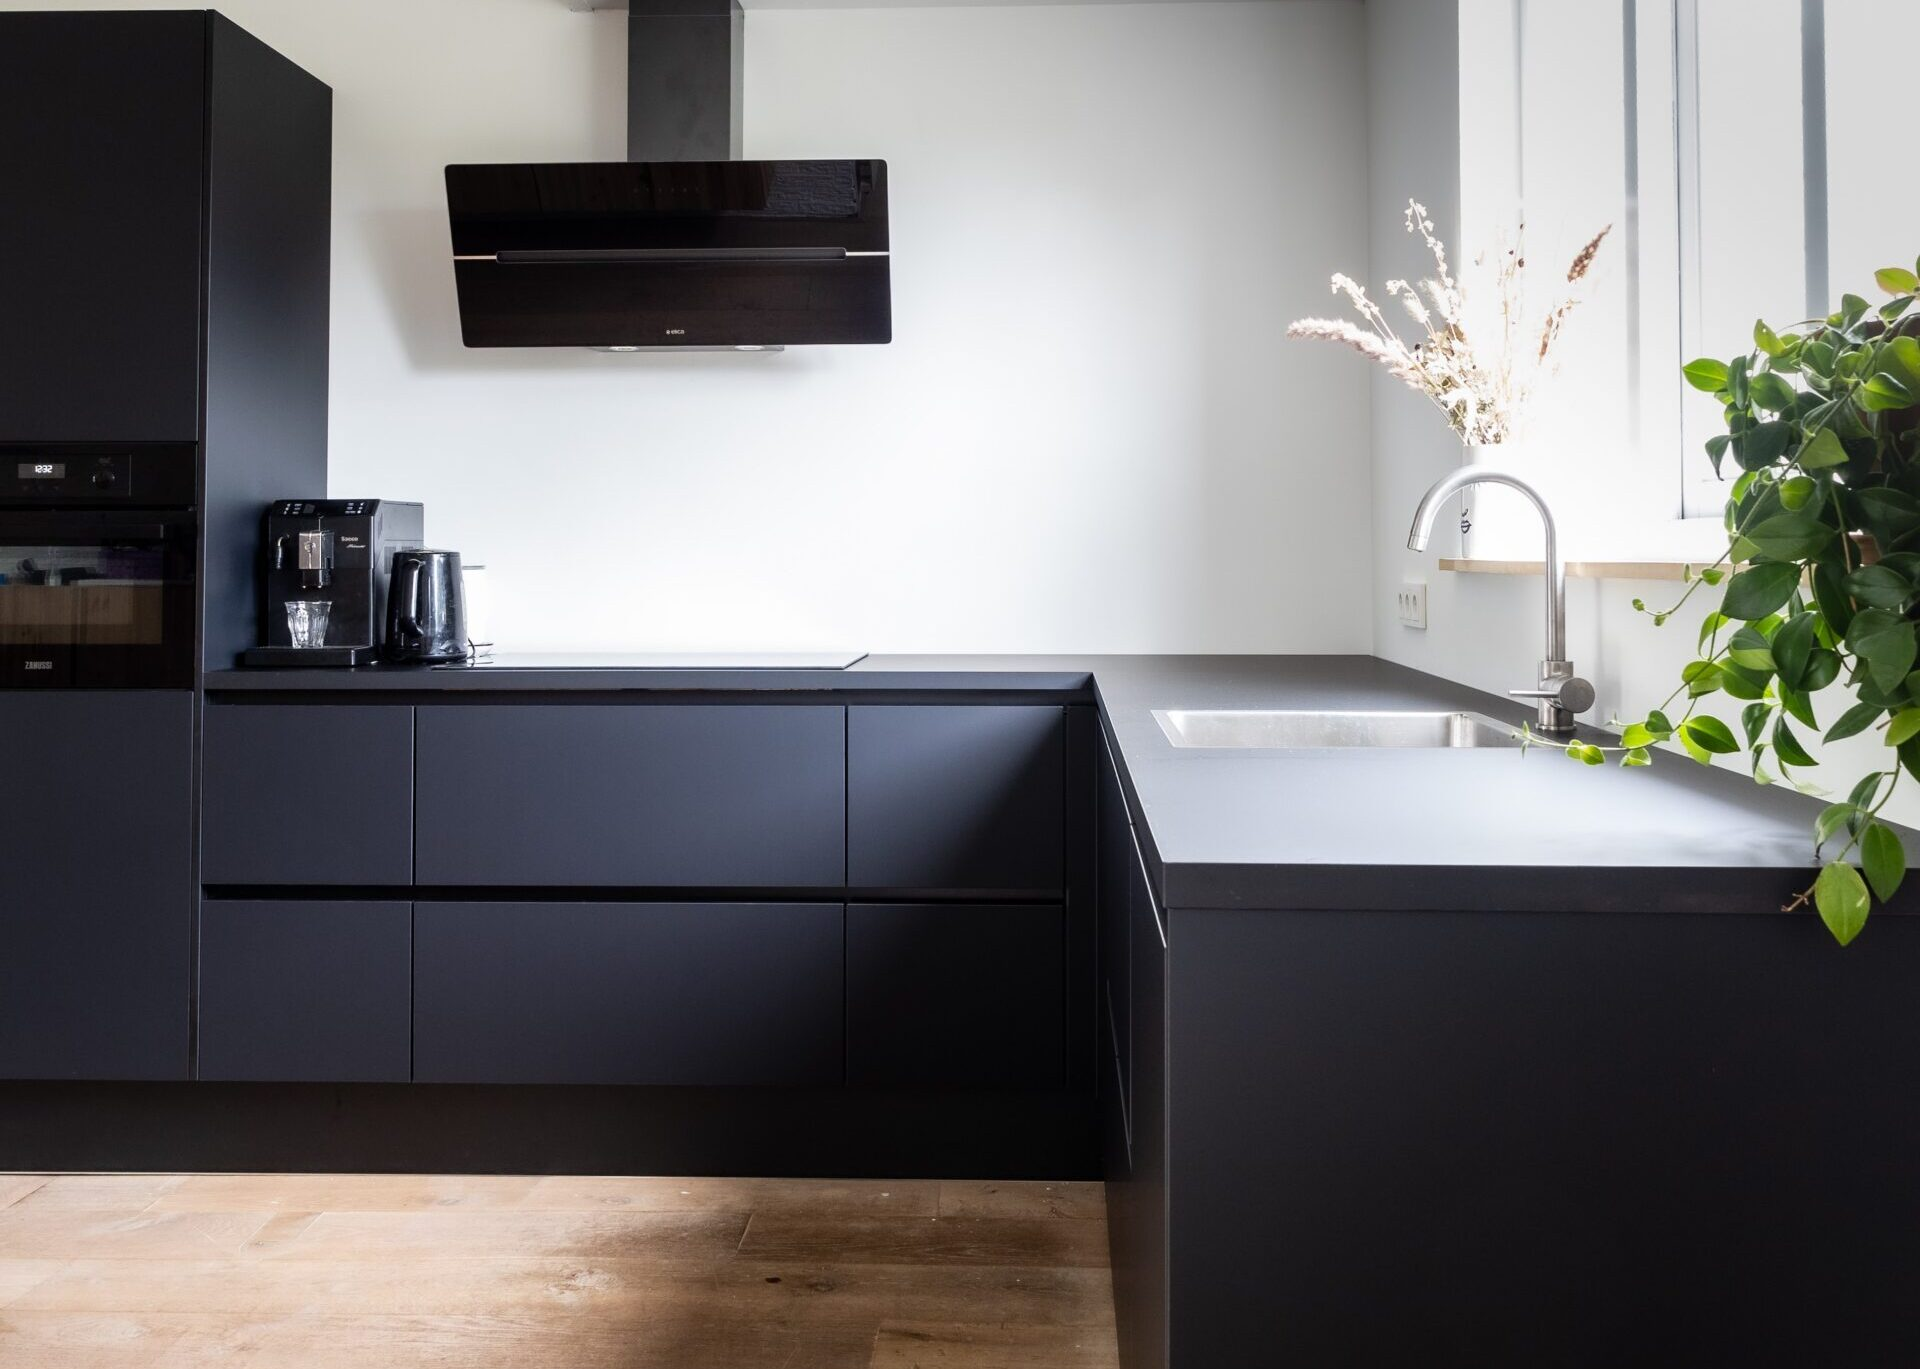 Matte lamination gives the ultimate modern looking kitchen cabinets